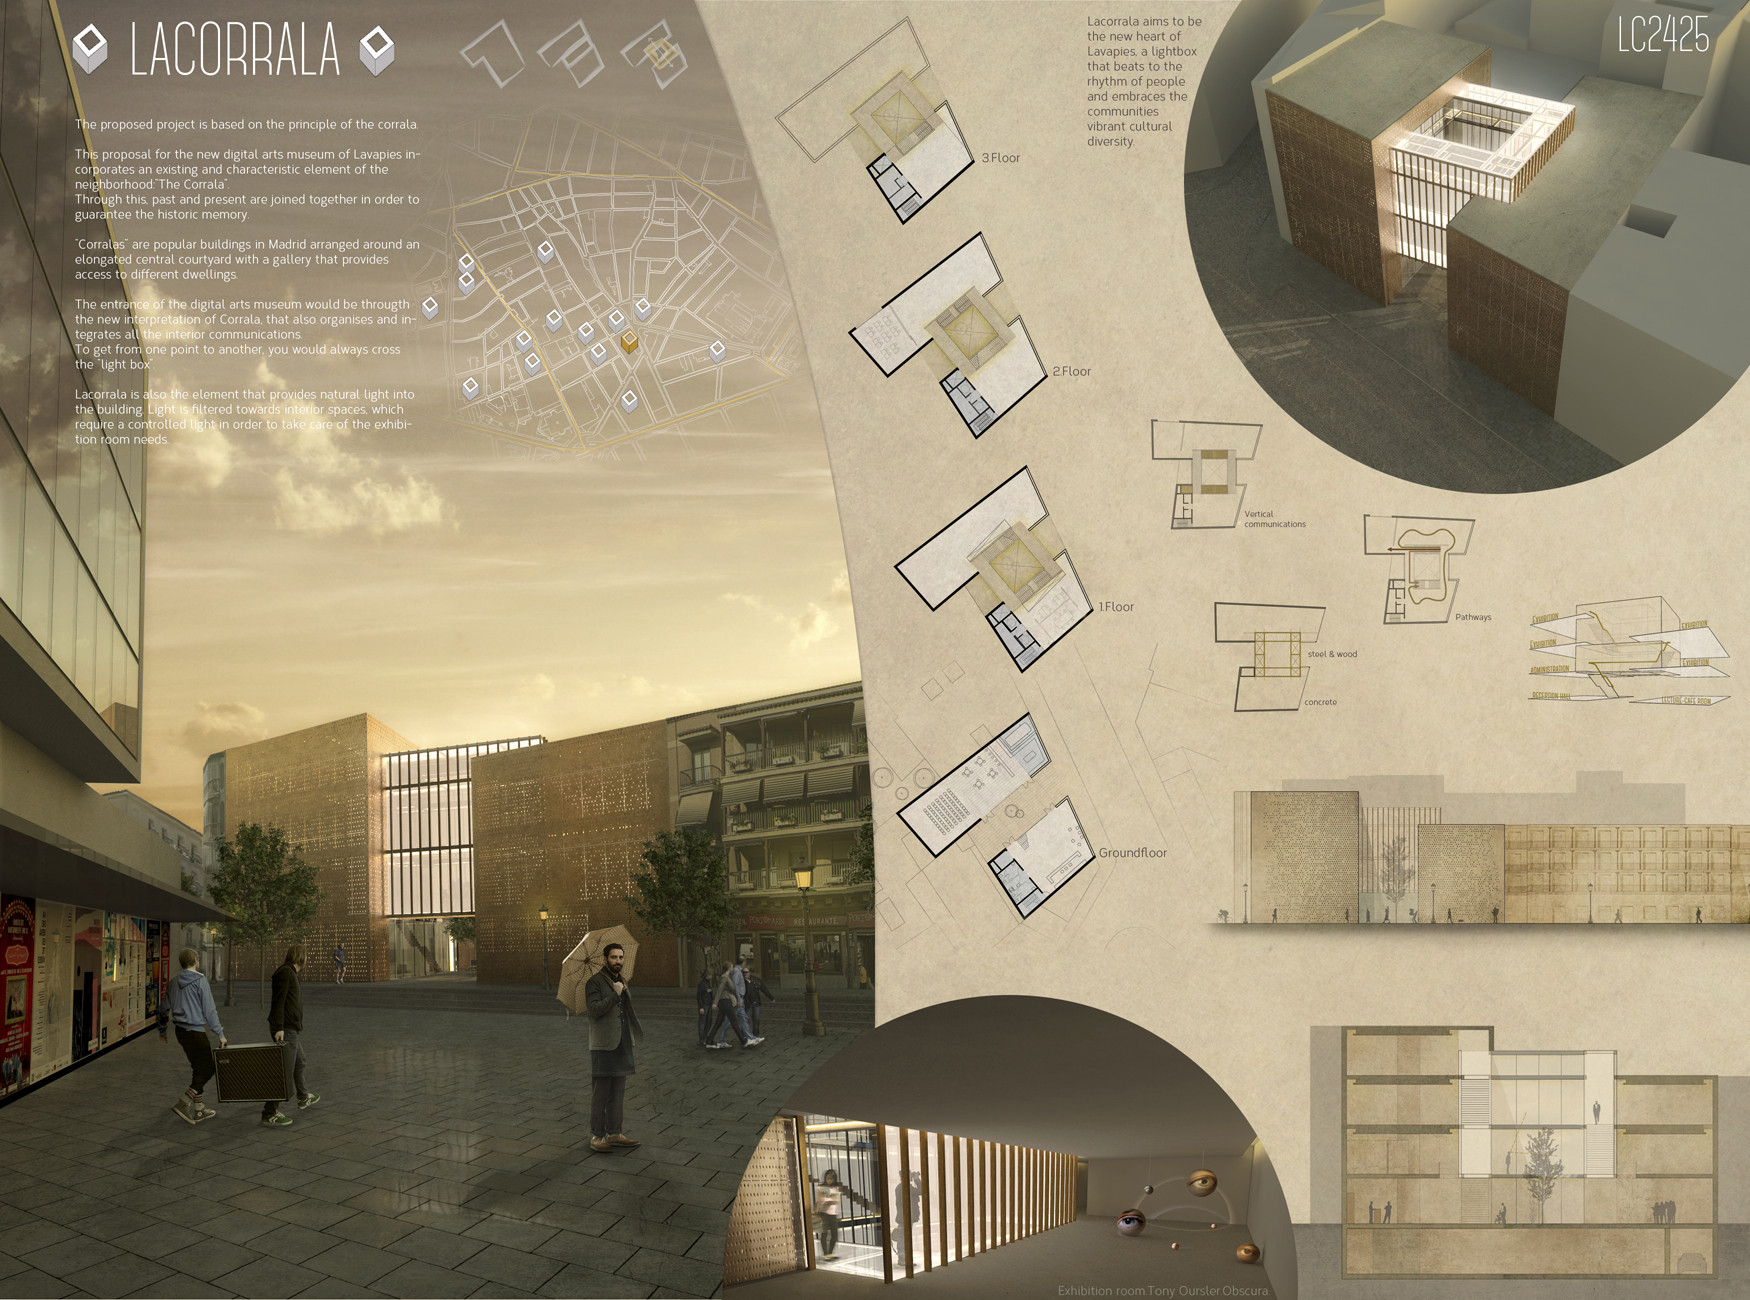 Second Prize: LACORRALA / Arch. Vicente Hernandez Vaquero, Silvia Rodriguez Iglesias (Coruña, Spain). Image Courtesy of Ctrl+Space Architectural Competitions